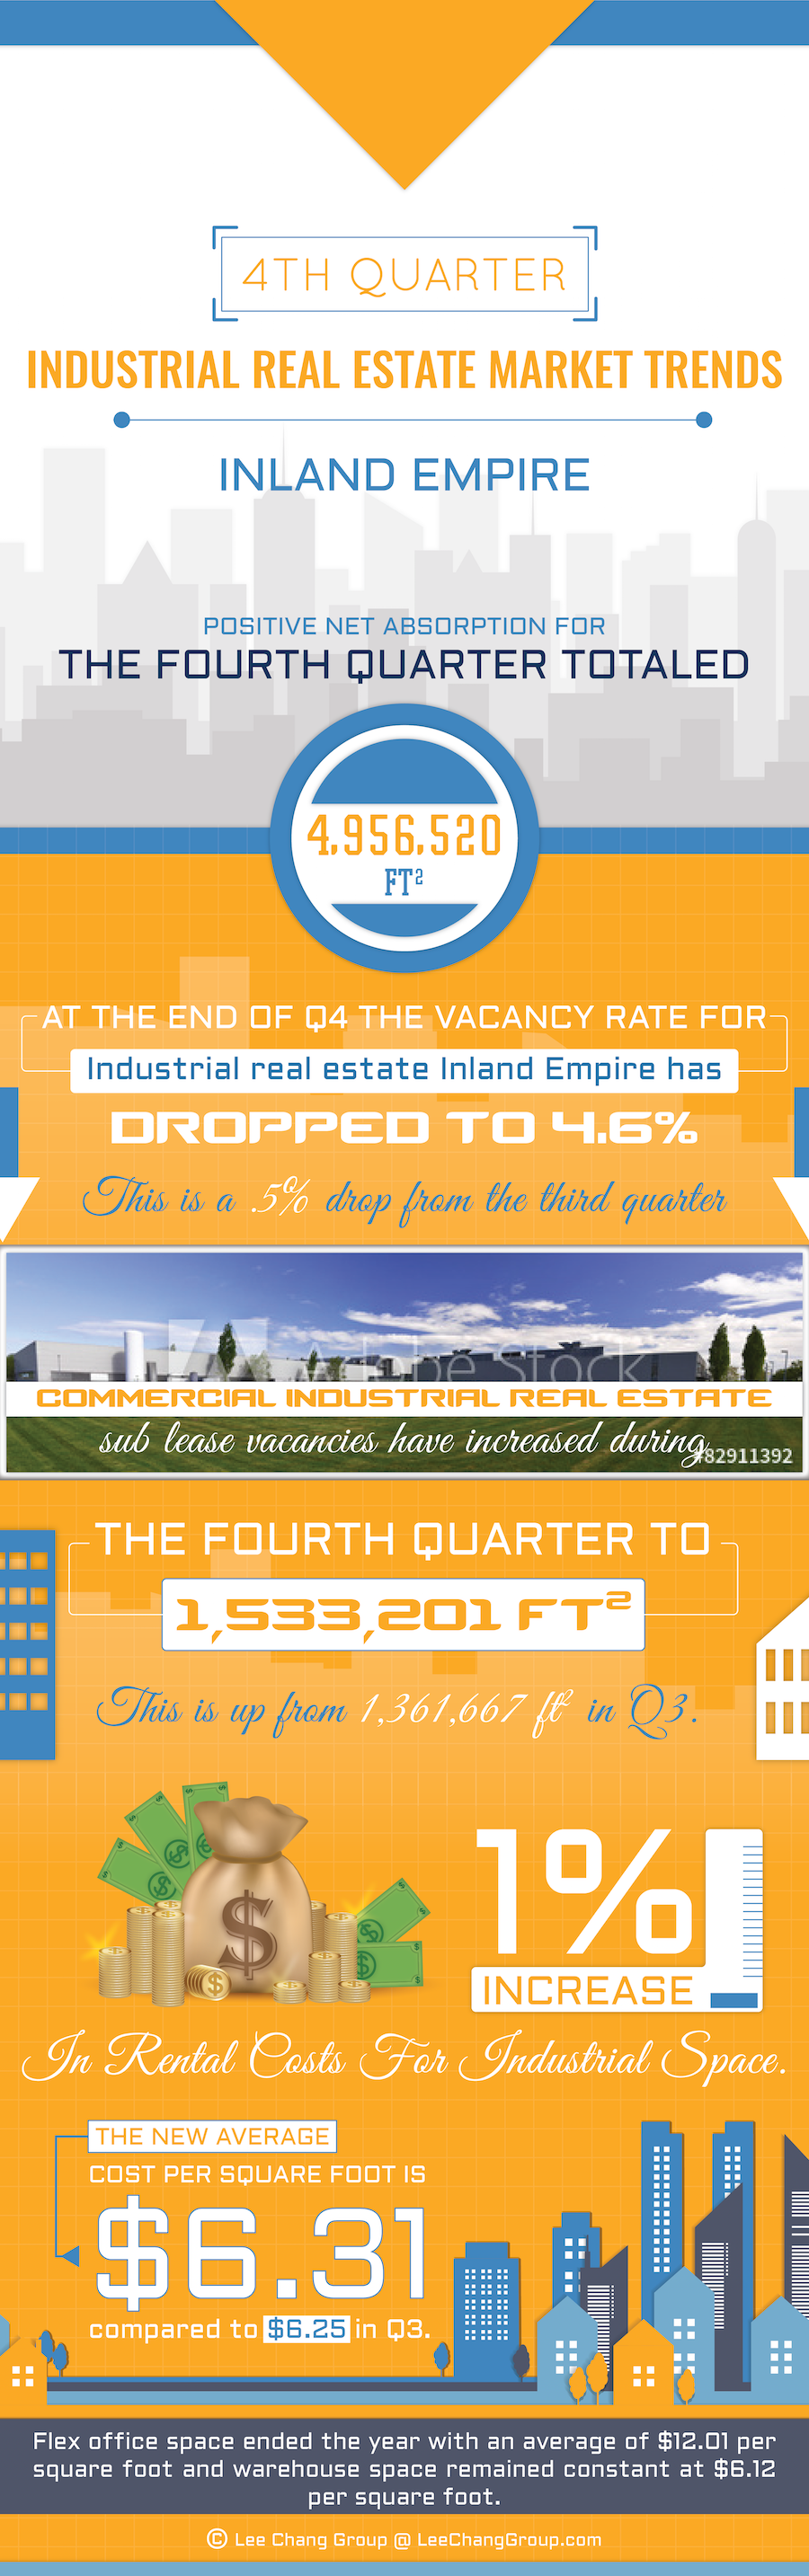 4th Quarter Industrial Real Estate Market Trends - Warehouse Brokers Inland Empire News, Companies, Agents News Infographic